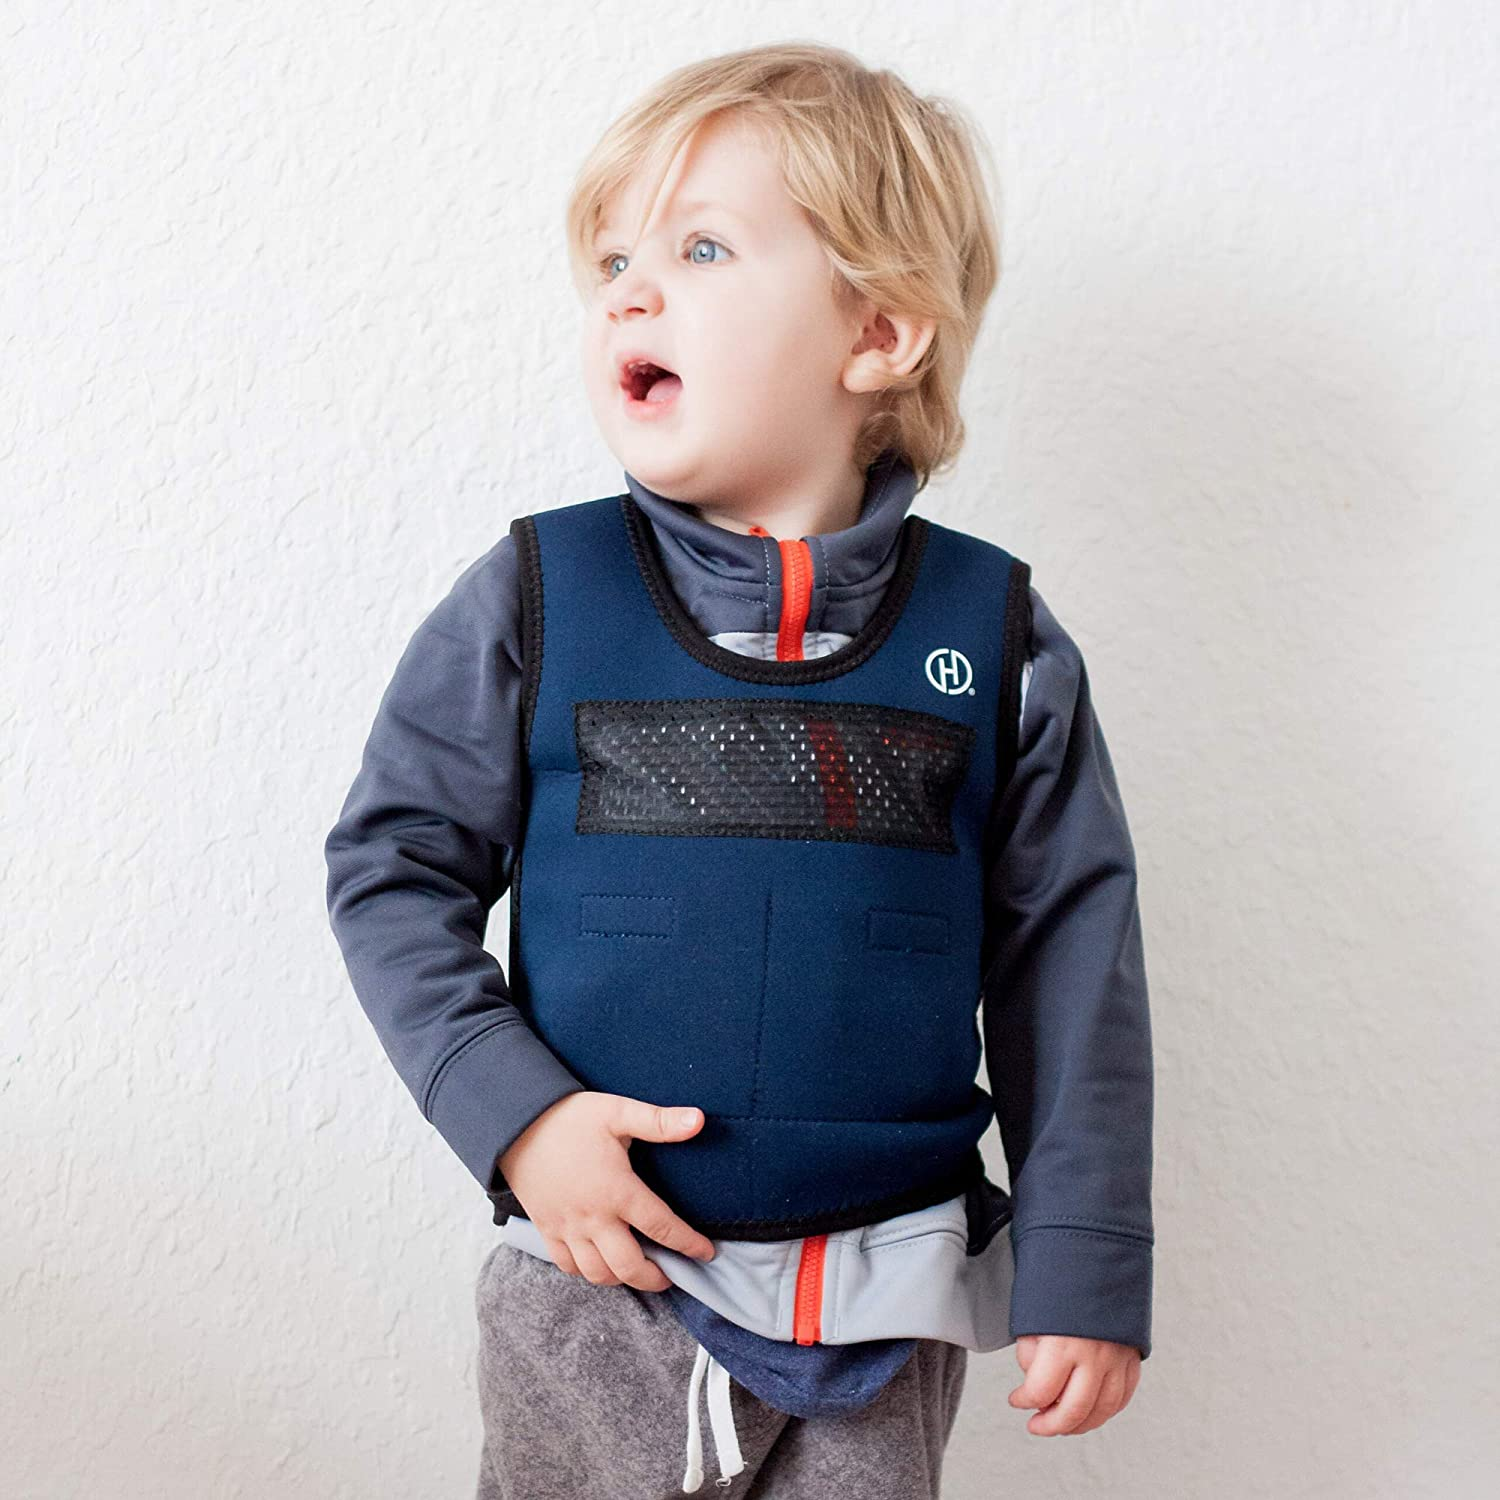 Pressure vest for kids mancia investments with high returns